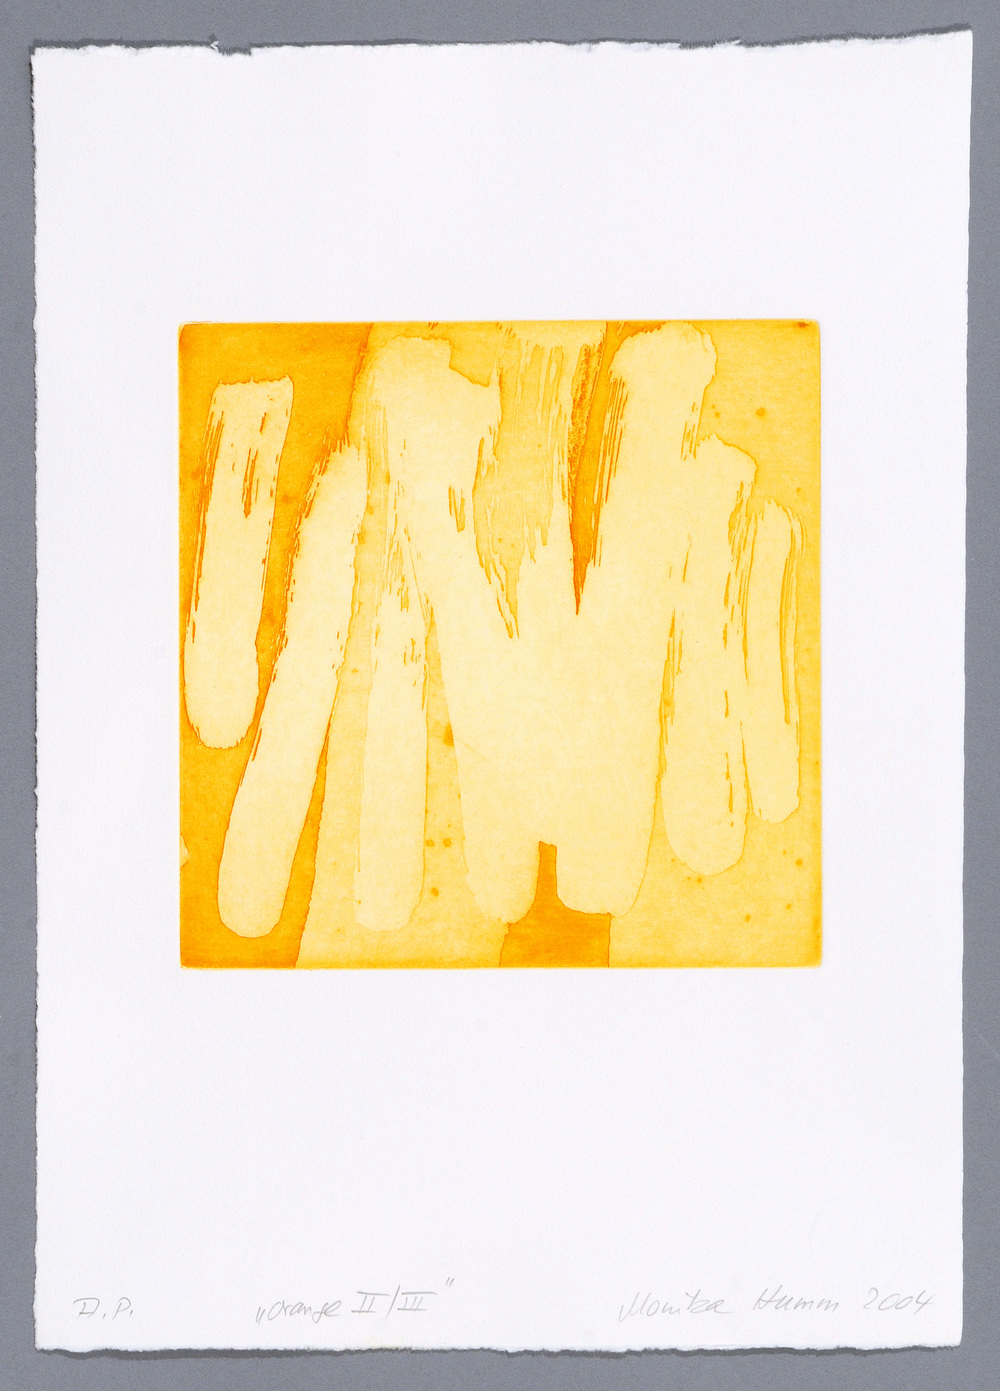 Humm_Aquatinta_V_yellow_ochre_II_39,5x28,5cm.jpg